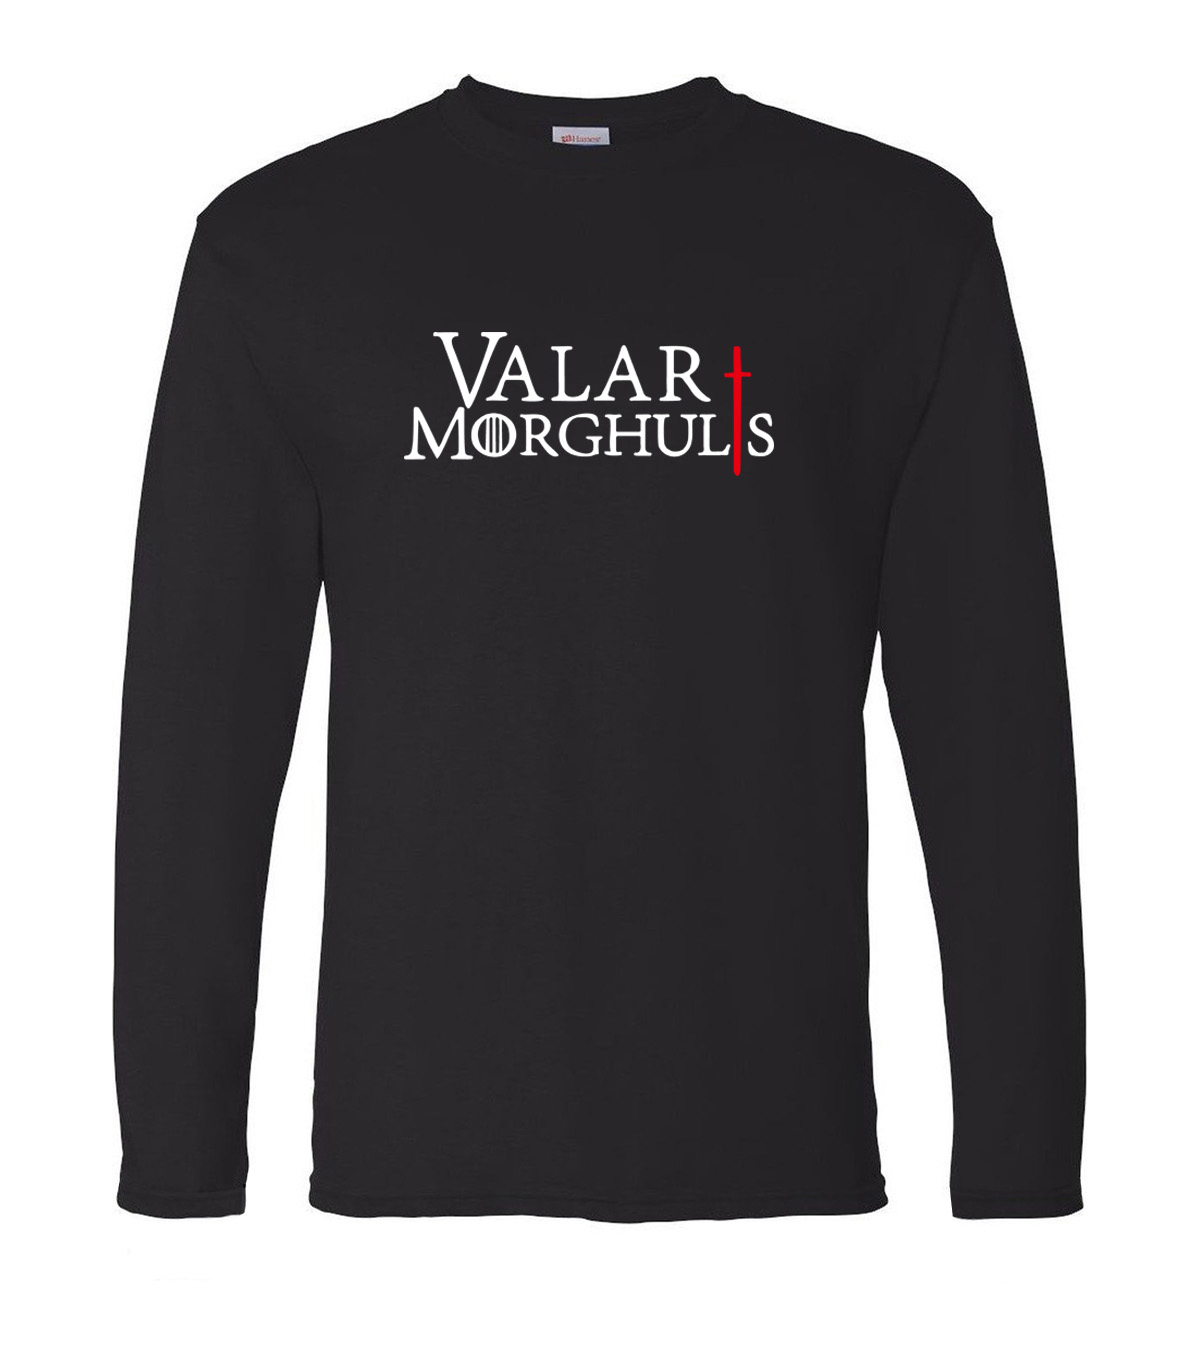 Game Of Thrones Valar Morghulis men's long sleeve T-shirt 2019 spring 100% cotton The Song of Fire and Ice hip hop man t shirt image